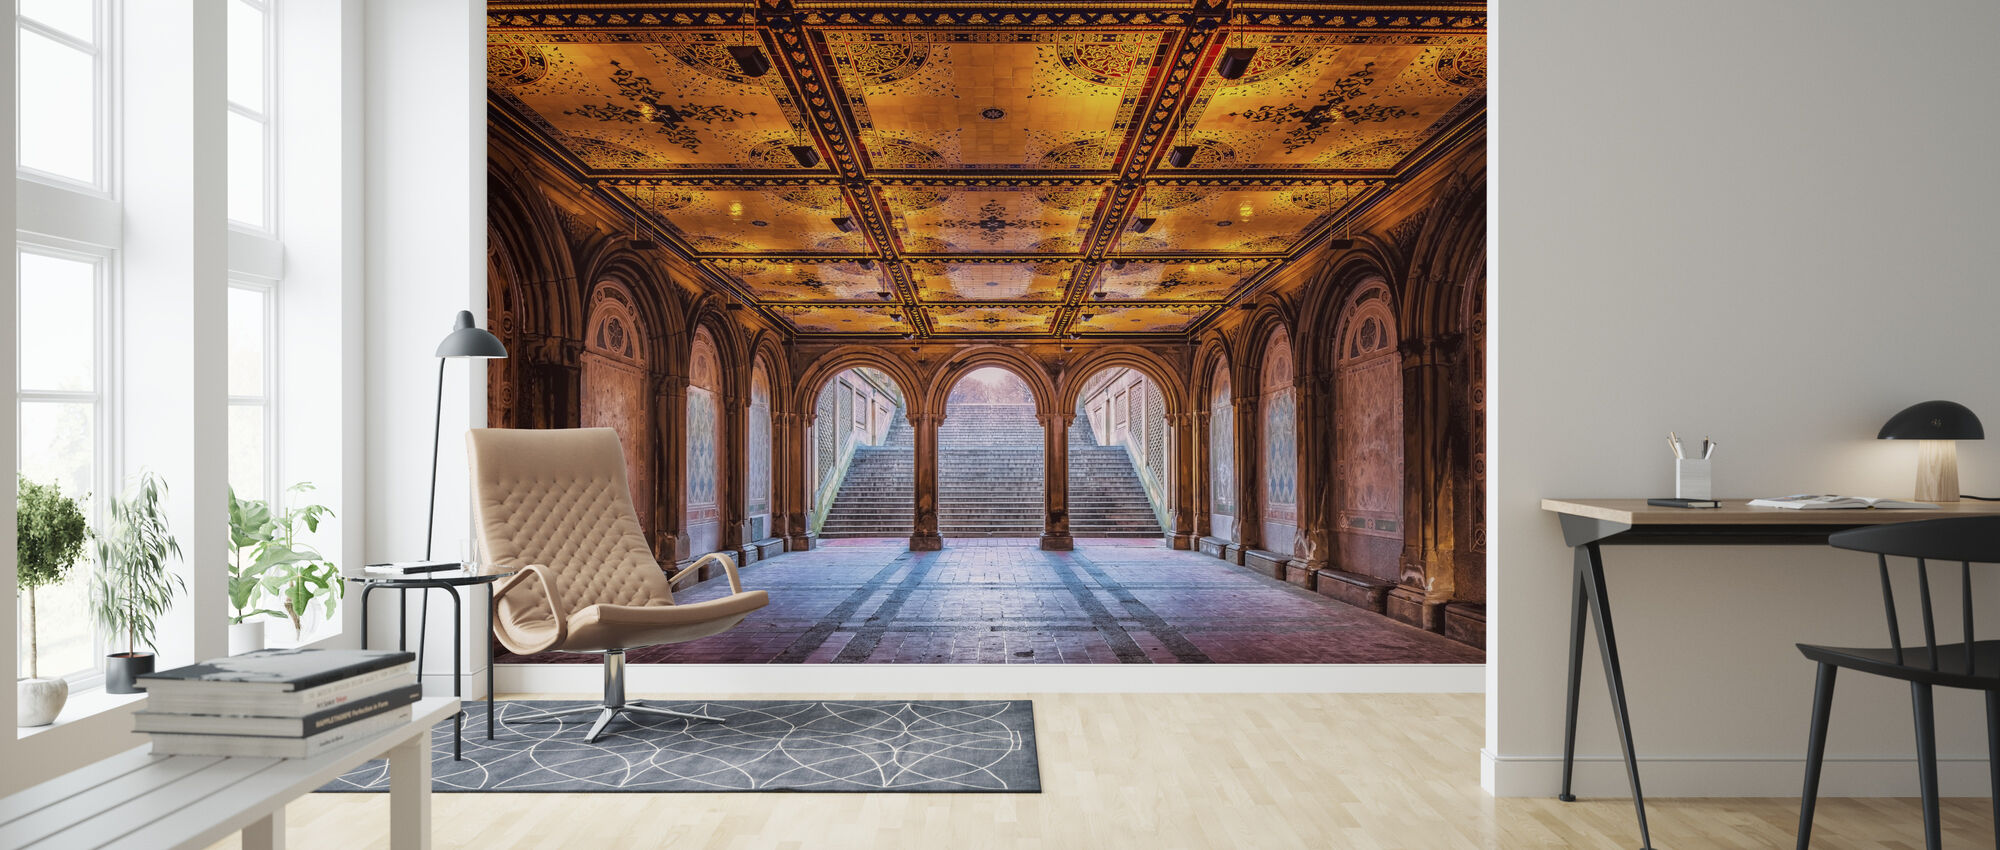 A Walk in the Park - Wallpaper - Living Room